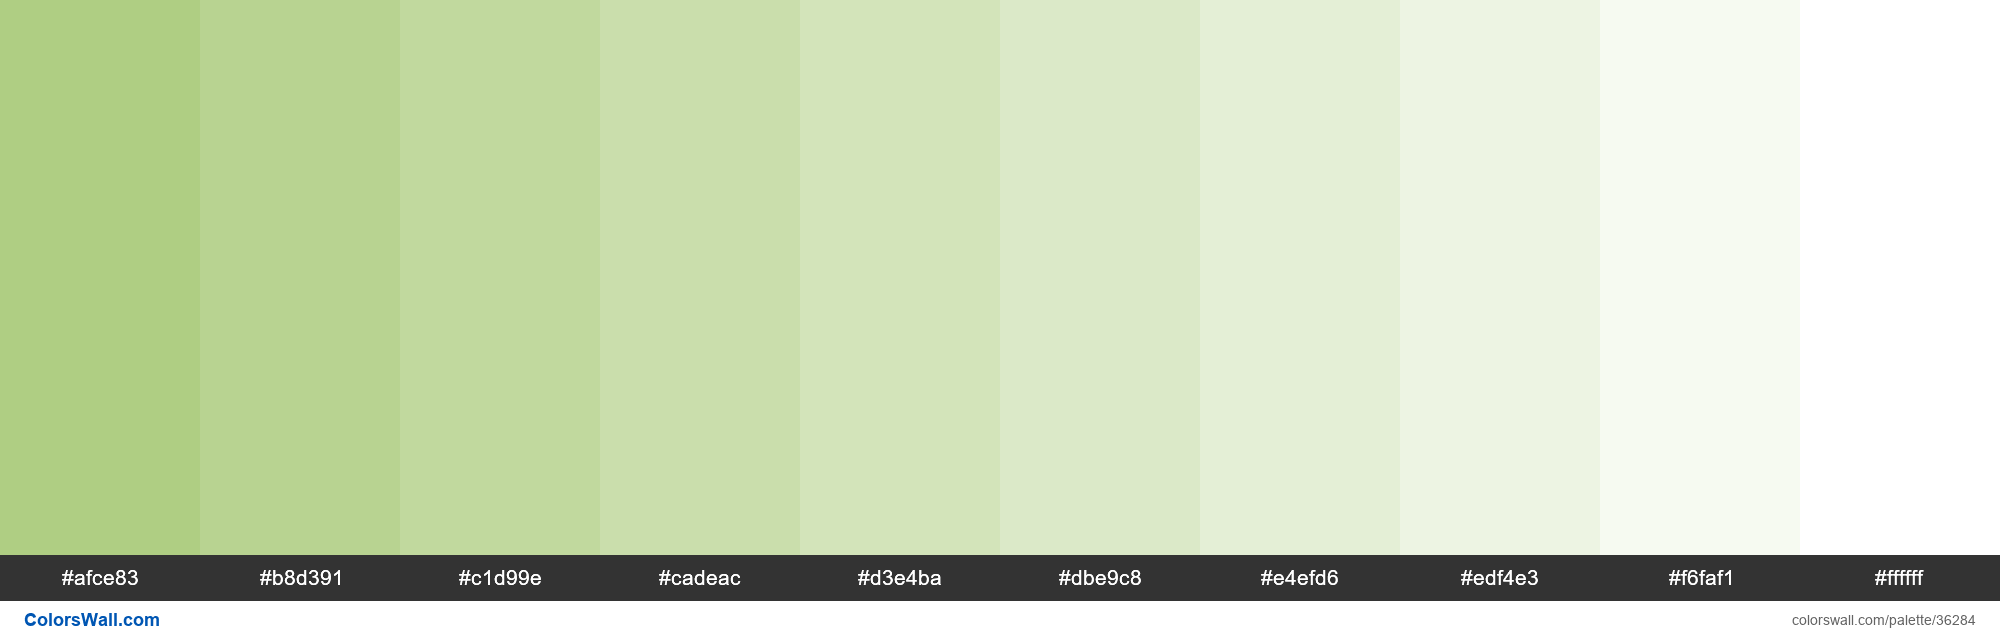 Tints XKCD Color light moss green #a6c875 hex - #36284